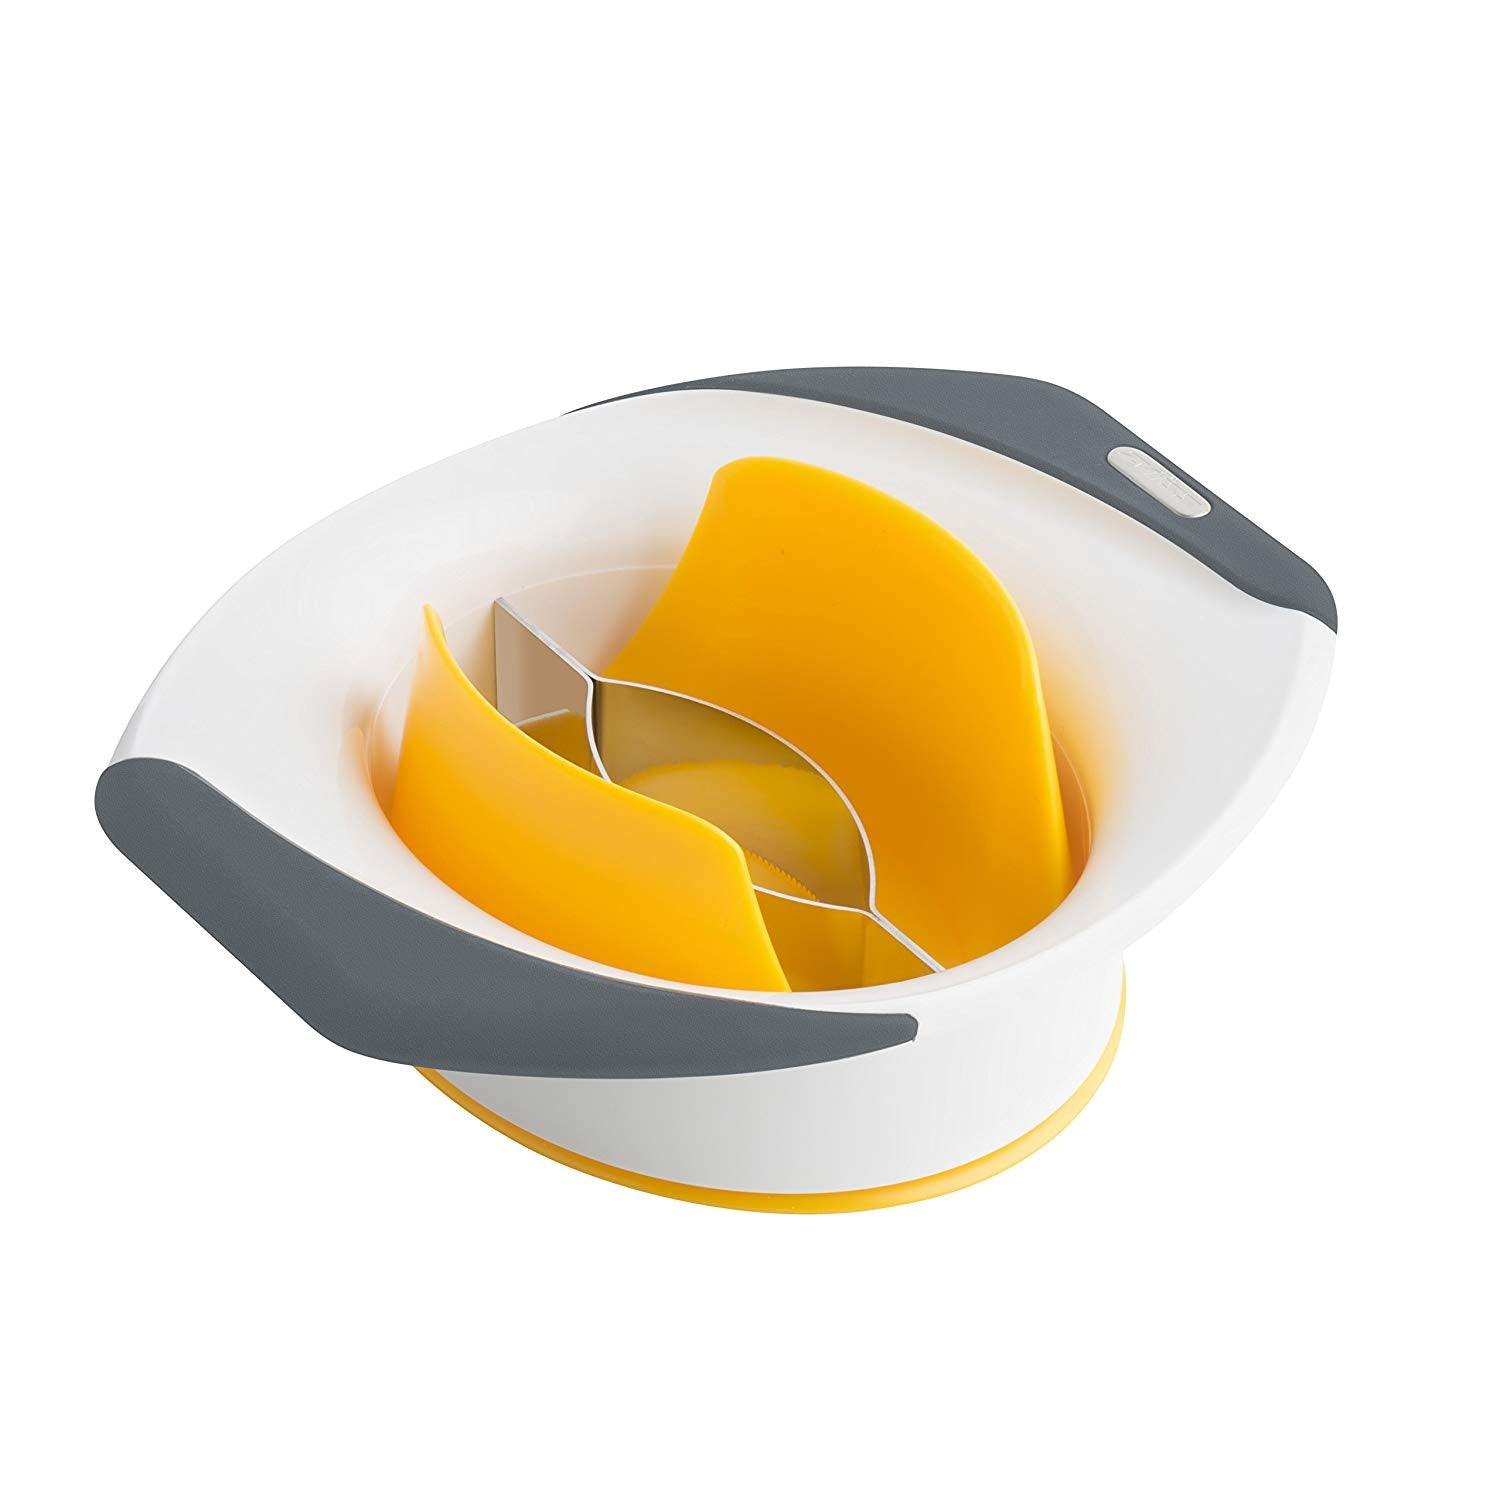 3 In 1 Mango Slicer, Peeler and Pit Remover - oddgifts.com